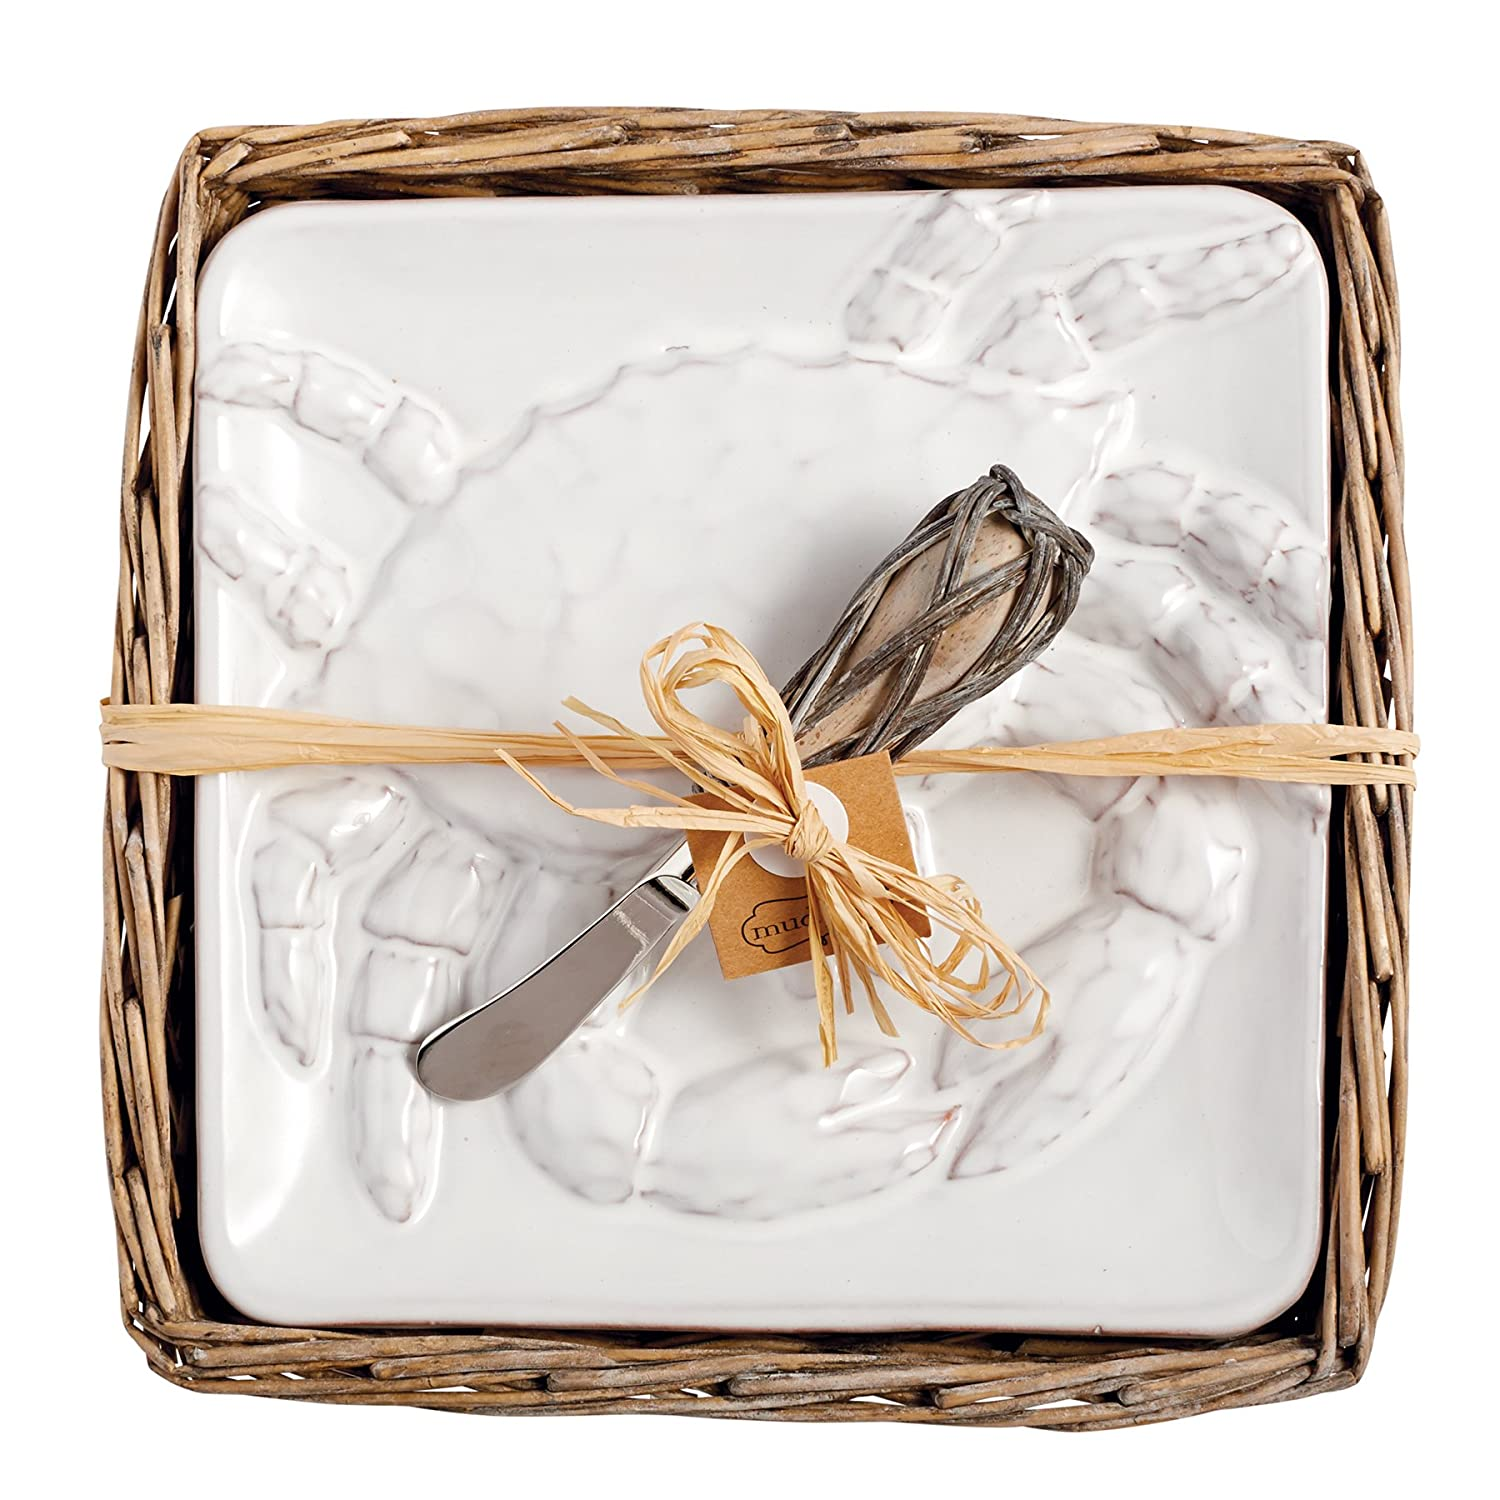 Coastal Christmas Tablescape Décor - Mud Pie white crab cheese plate set in willow holder from the Classic Crab Collection